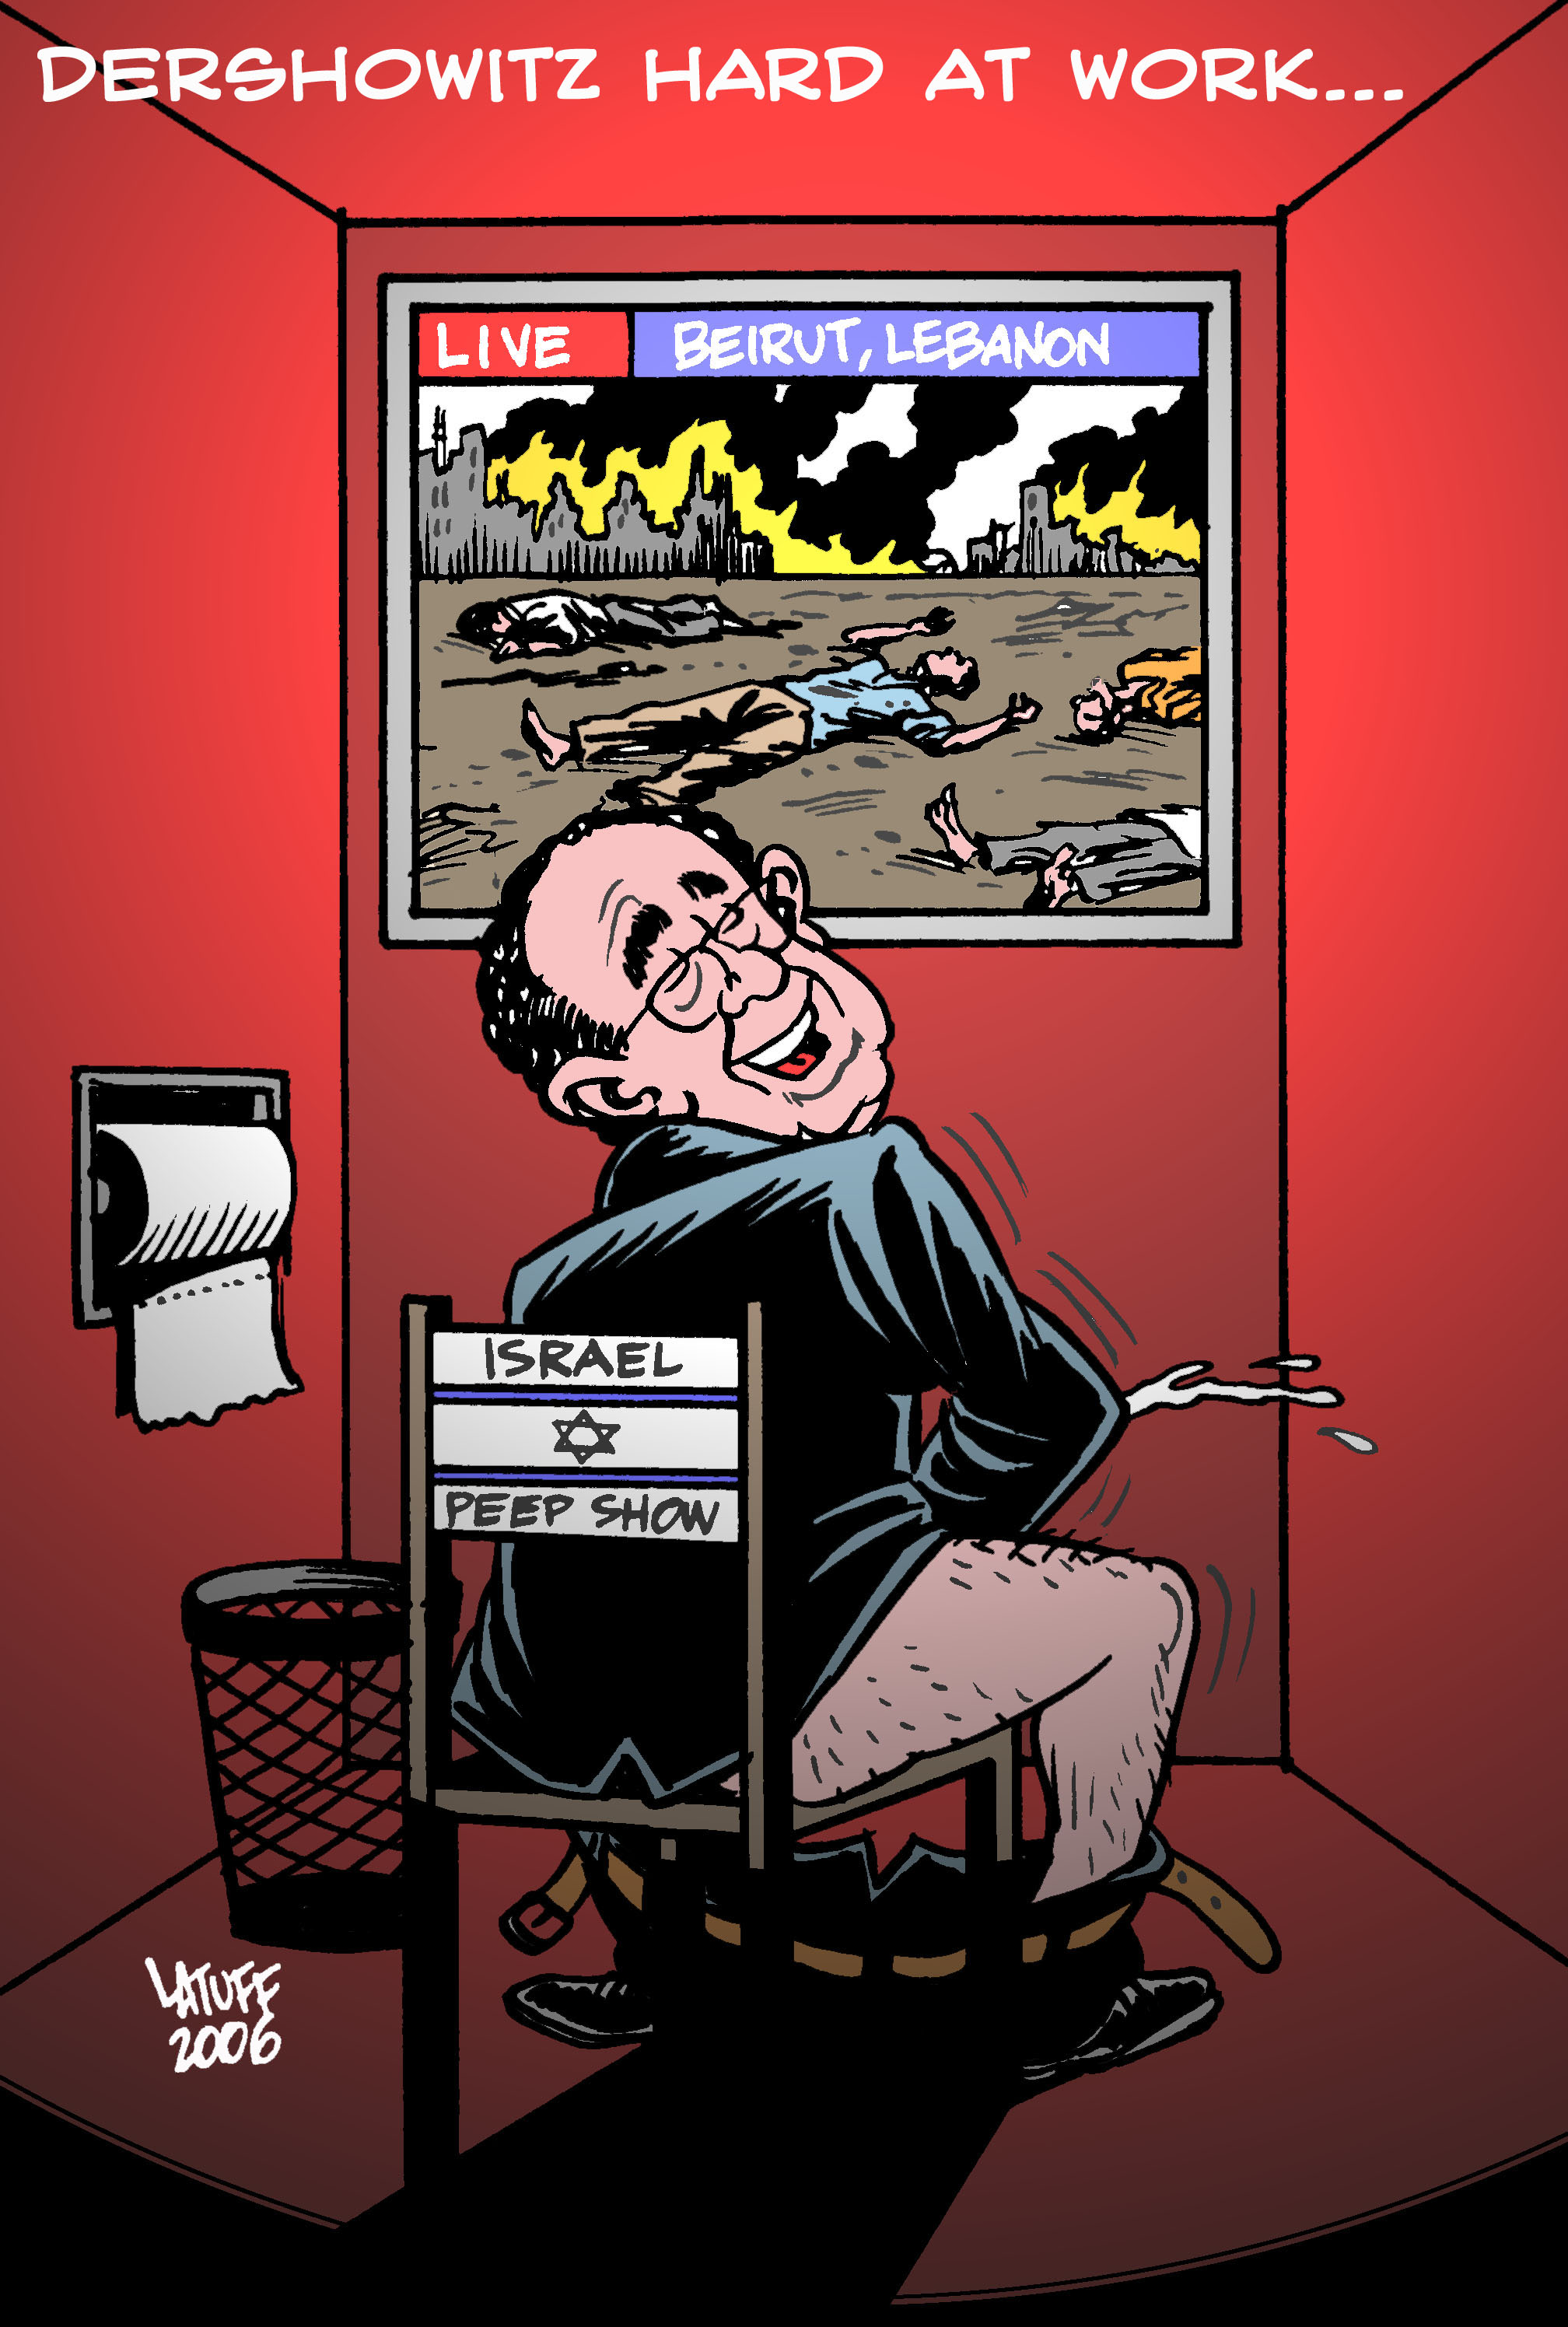 http://upload.wikimedia.org/wikipedia/commons/0/0b/Alan_dershowitz_by_Latuff.jpg